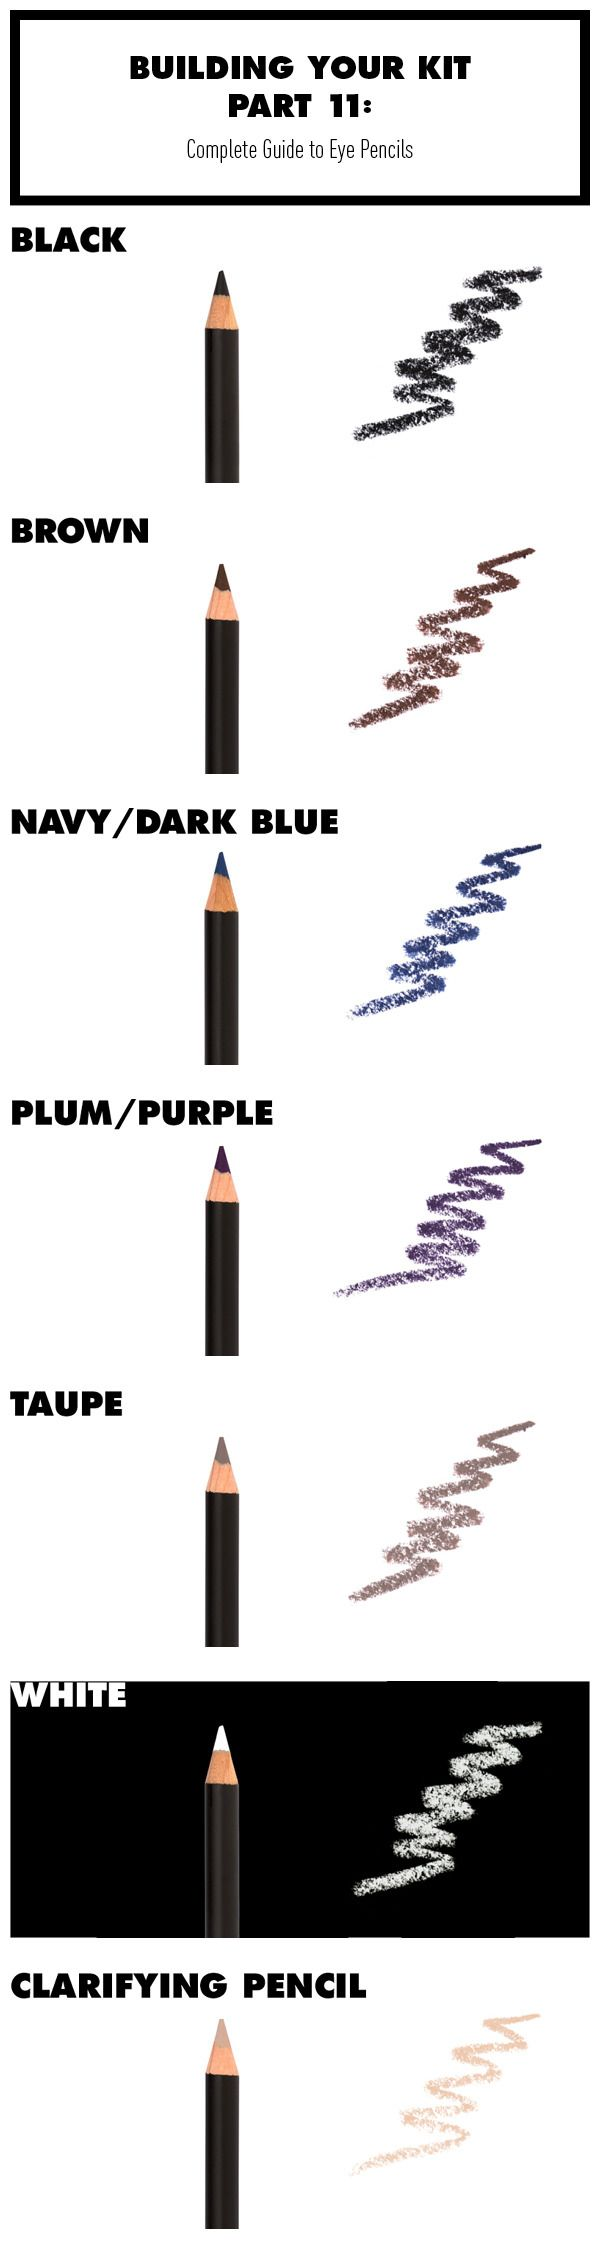 Building Your Kit Part 11: All About Eye Pencils